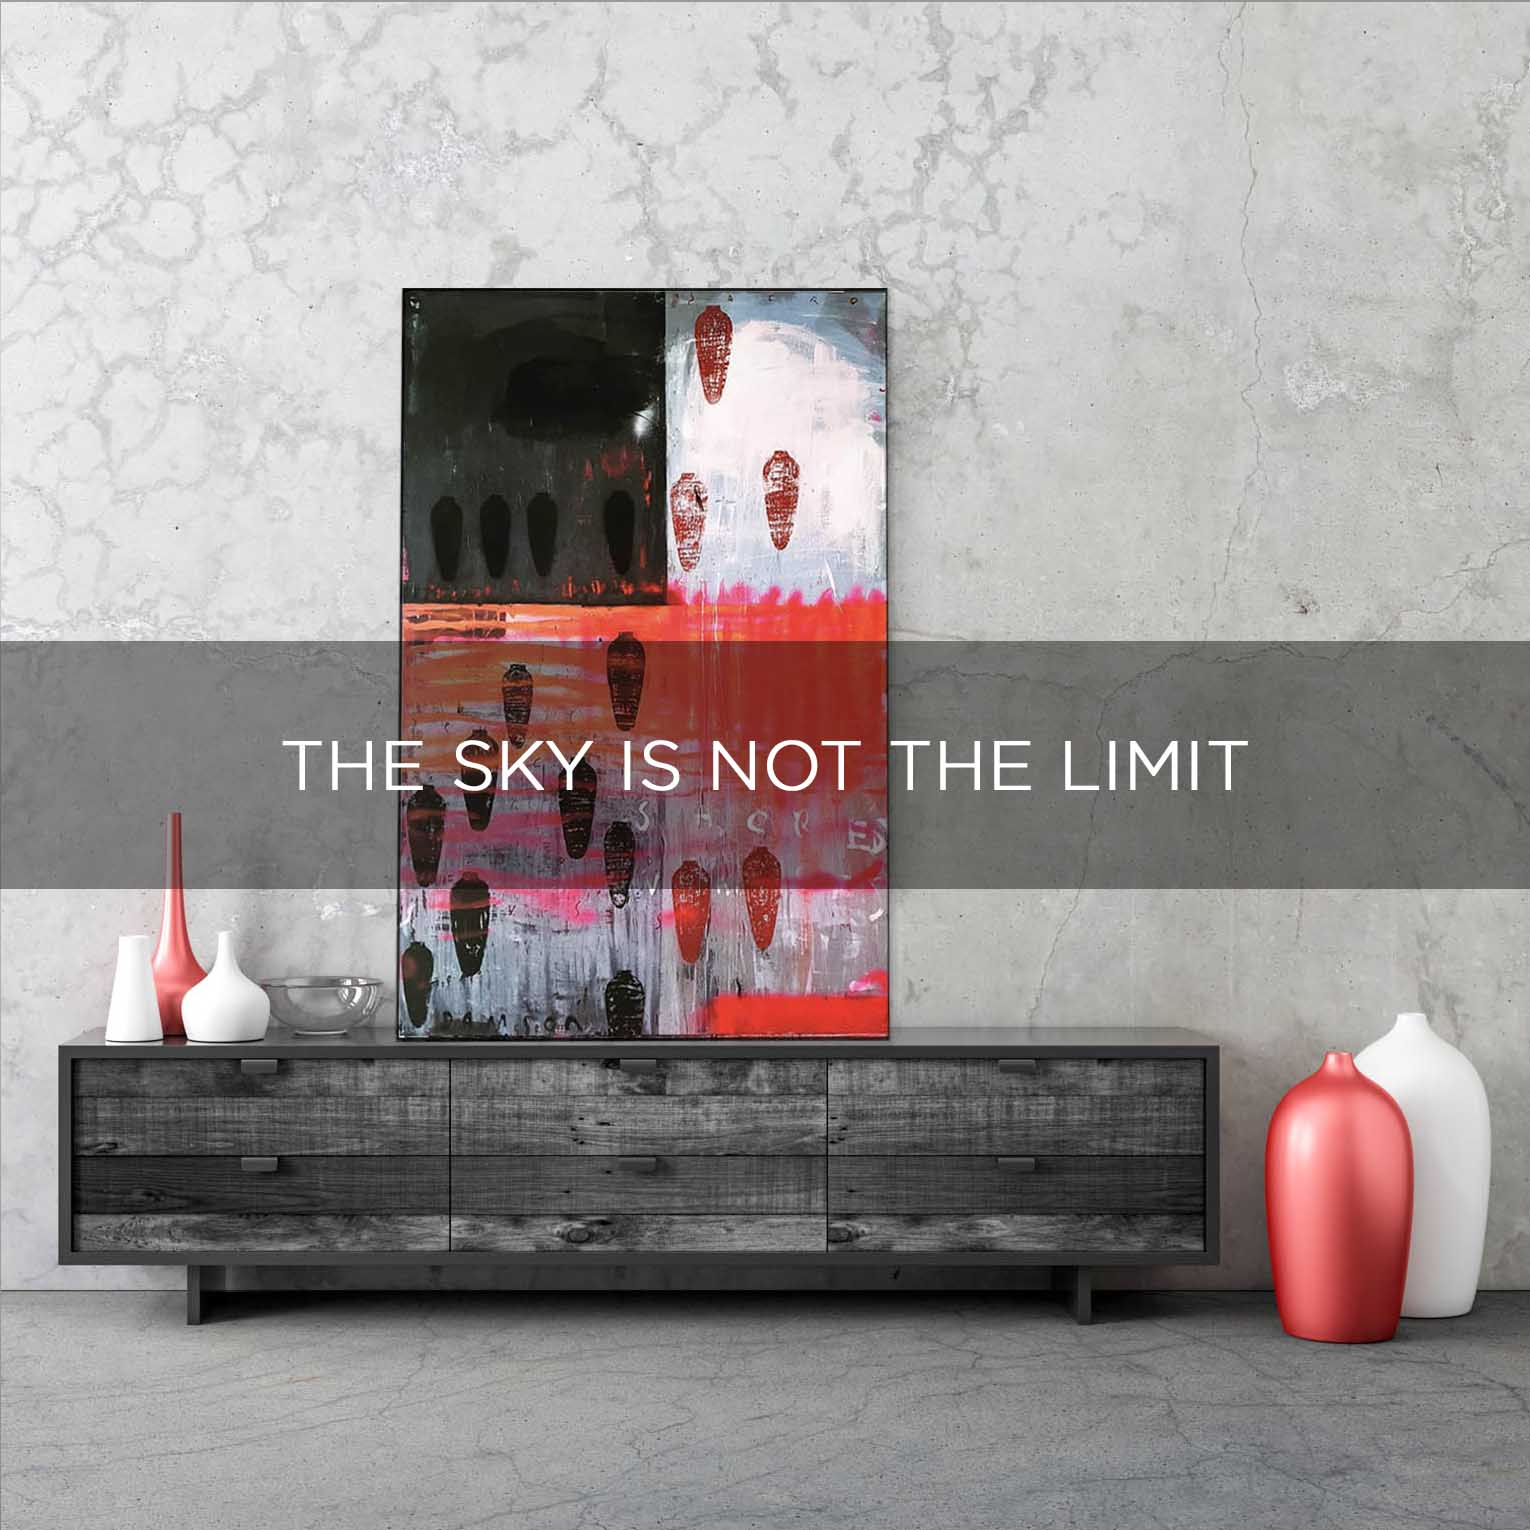 THE SKY IS NOT THE LIMIT - QBX DESIGN QUADRO D'ARREDO PER IL SETTORE LUXORY DESIGN